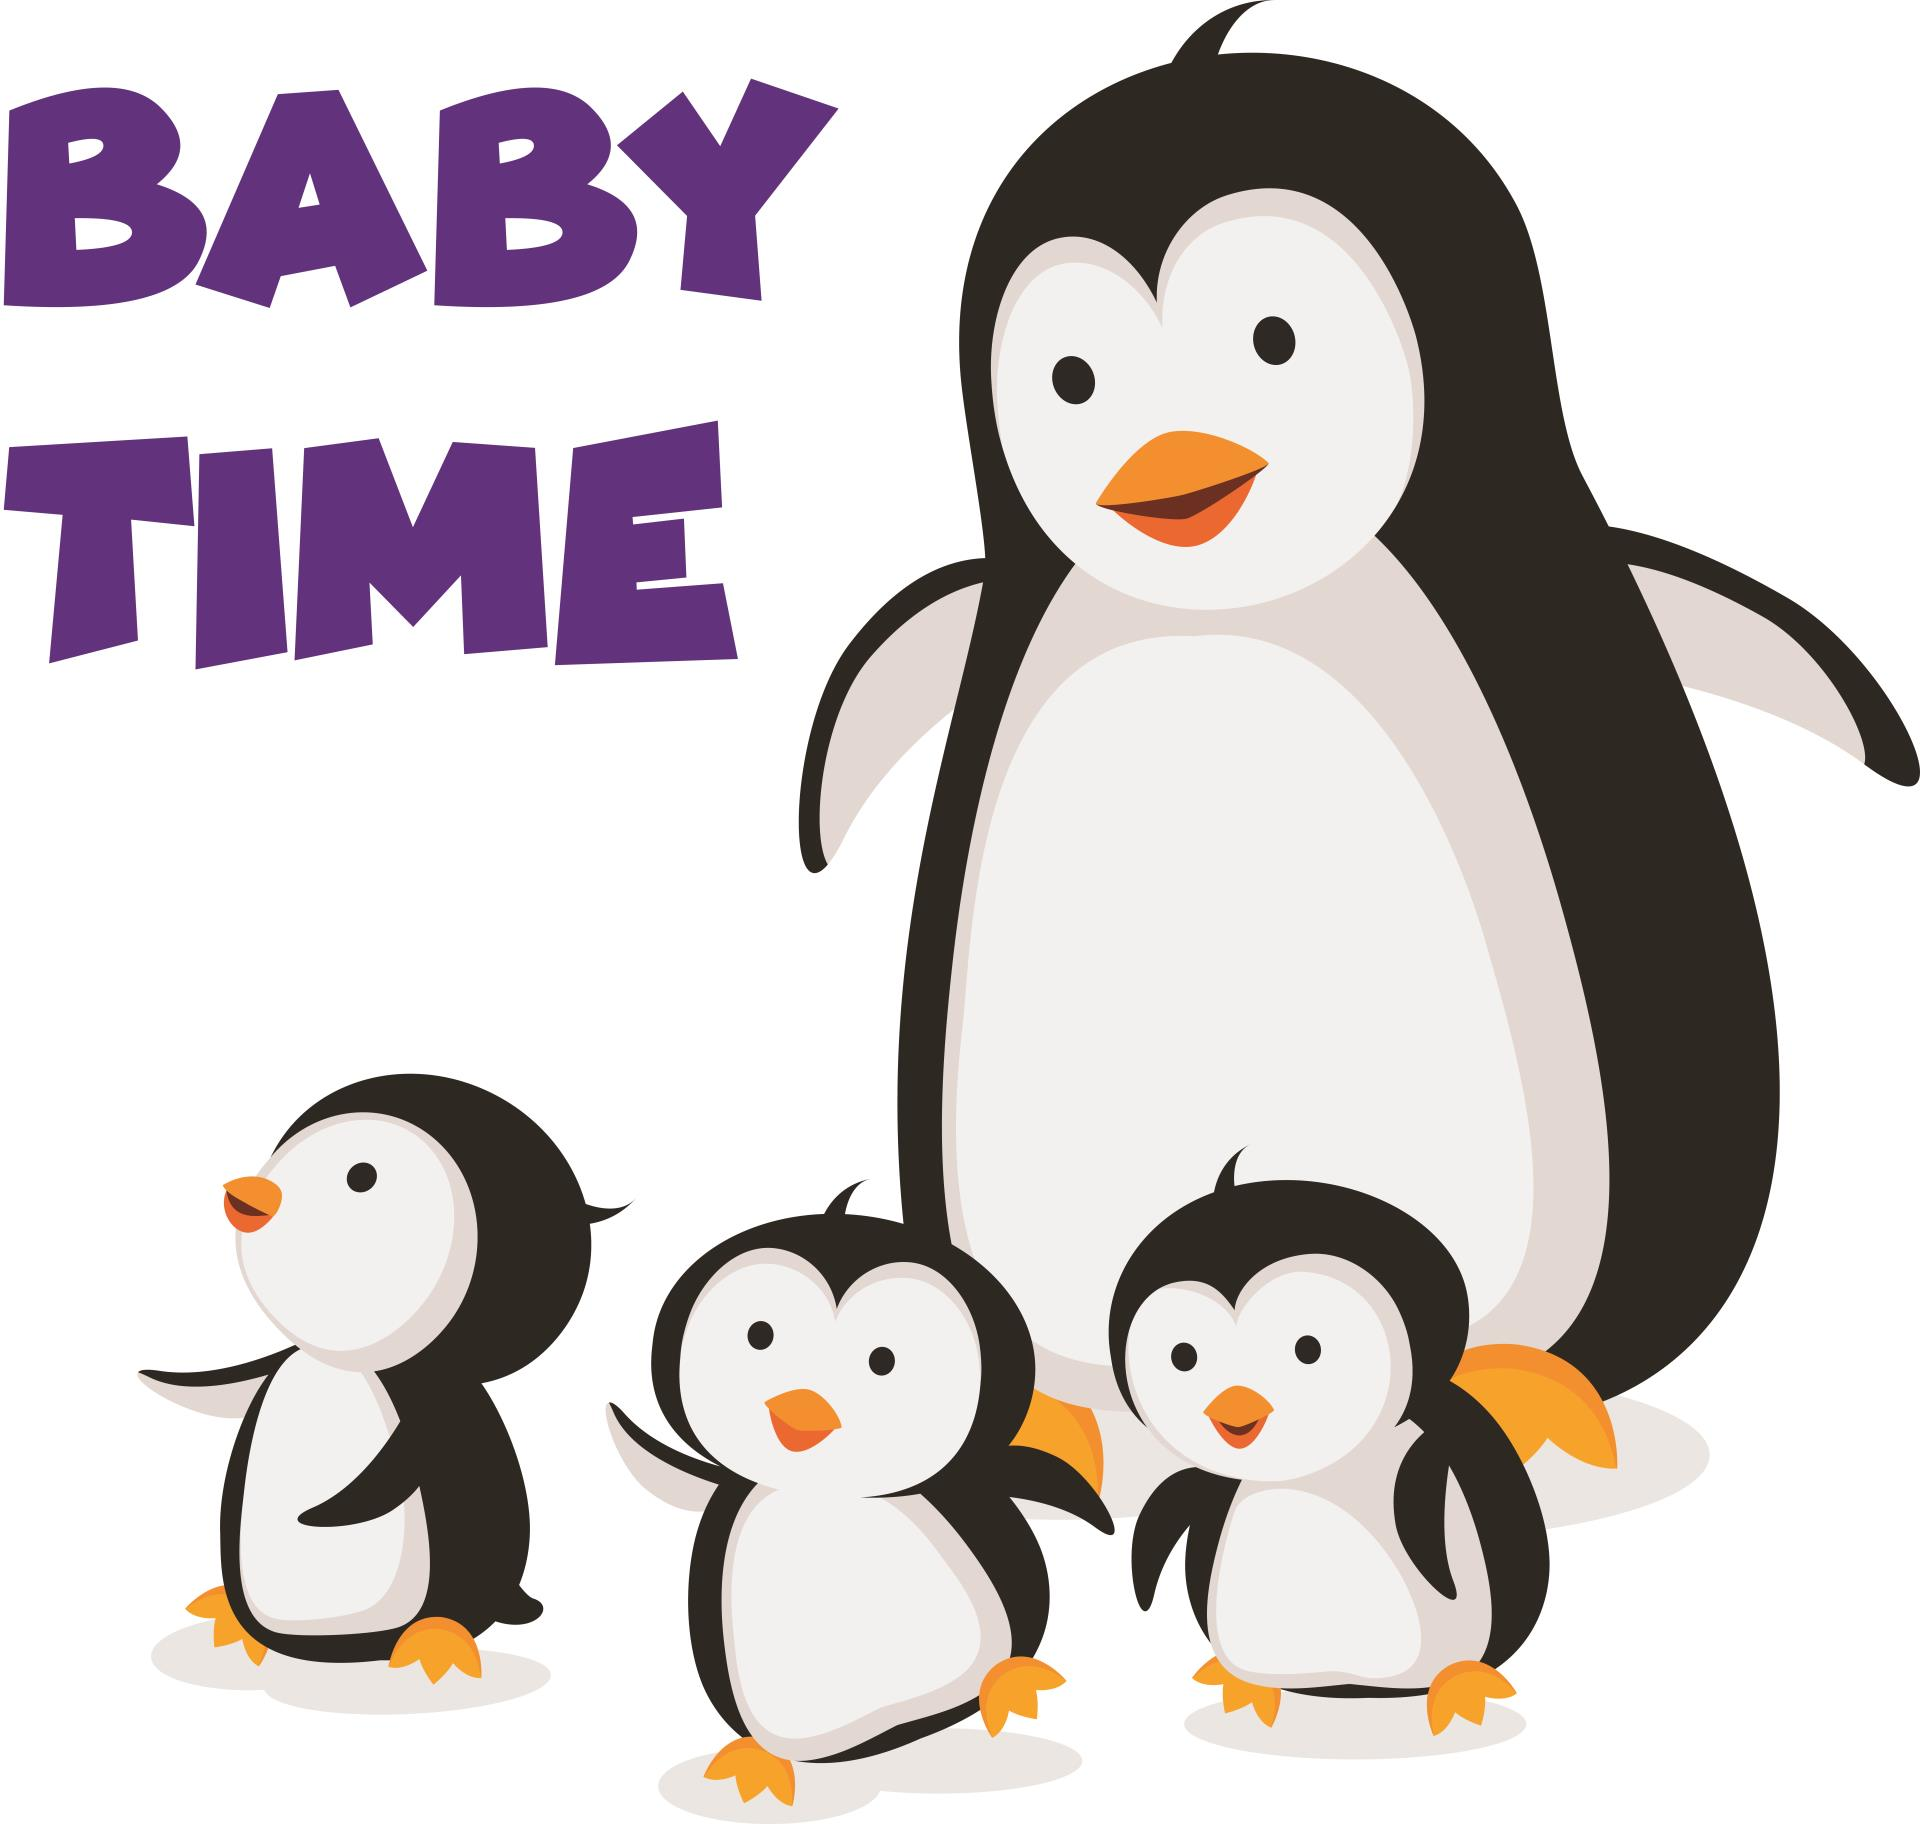 Baby Time Penguins(1)